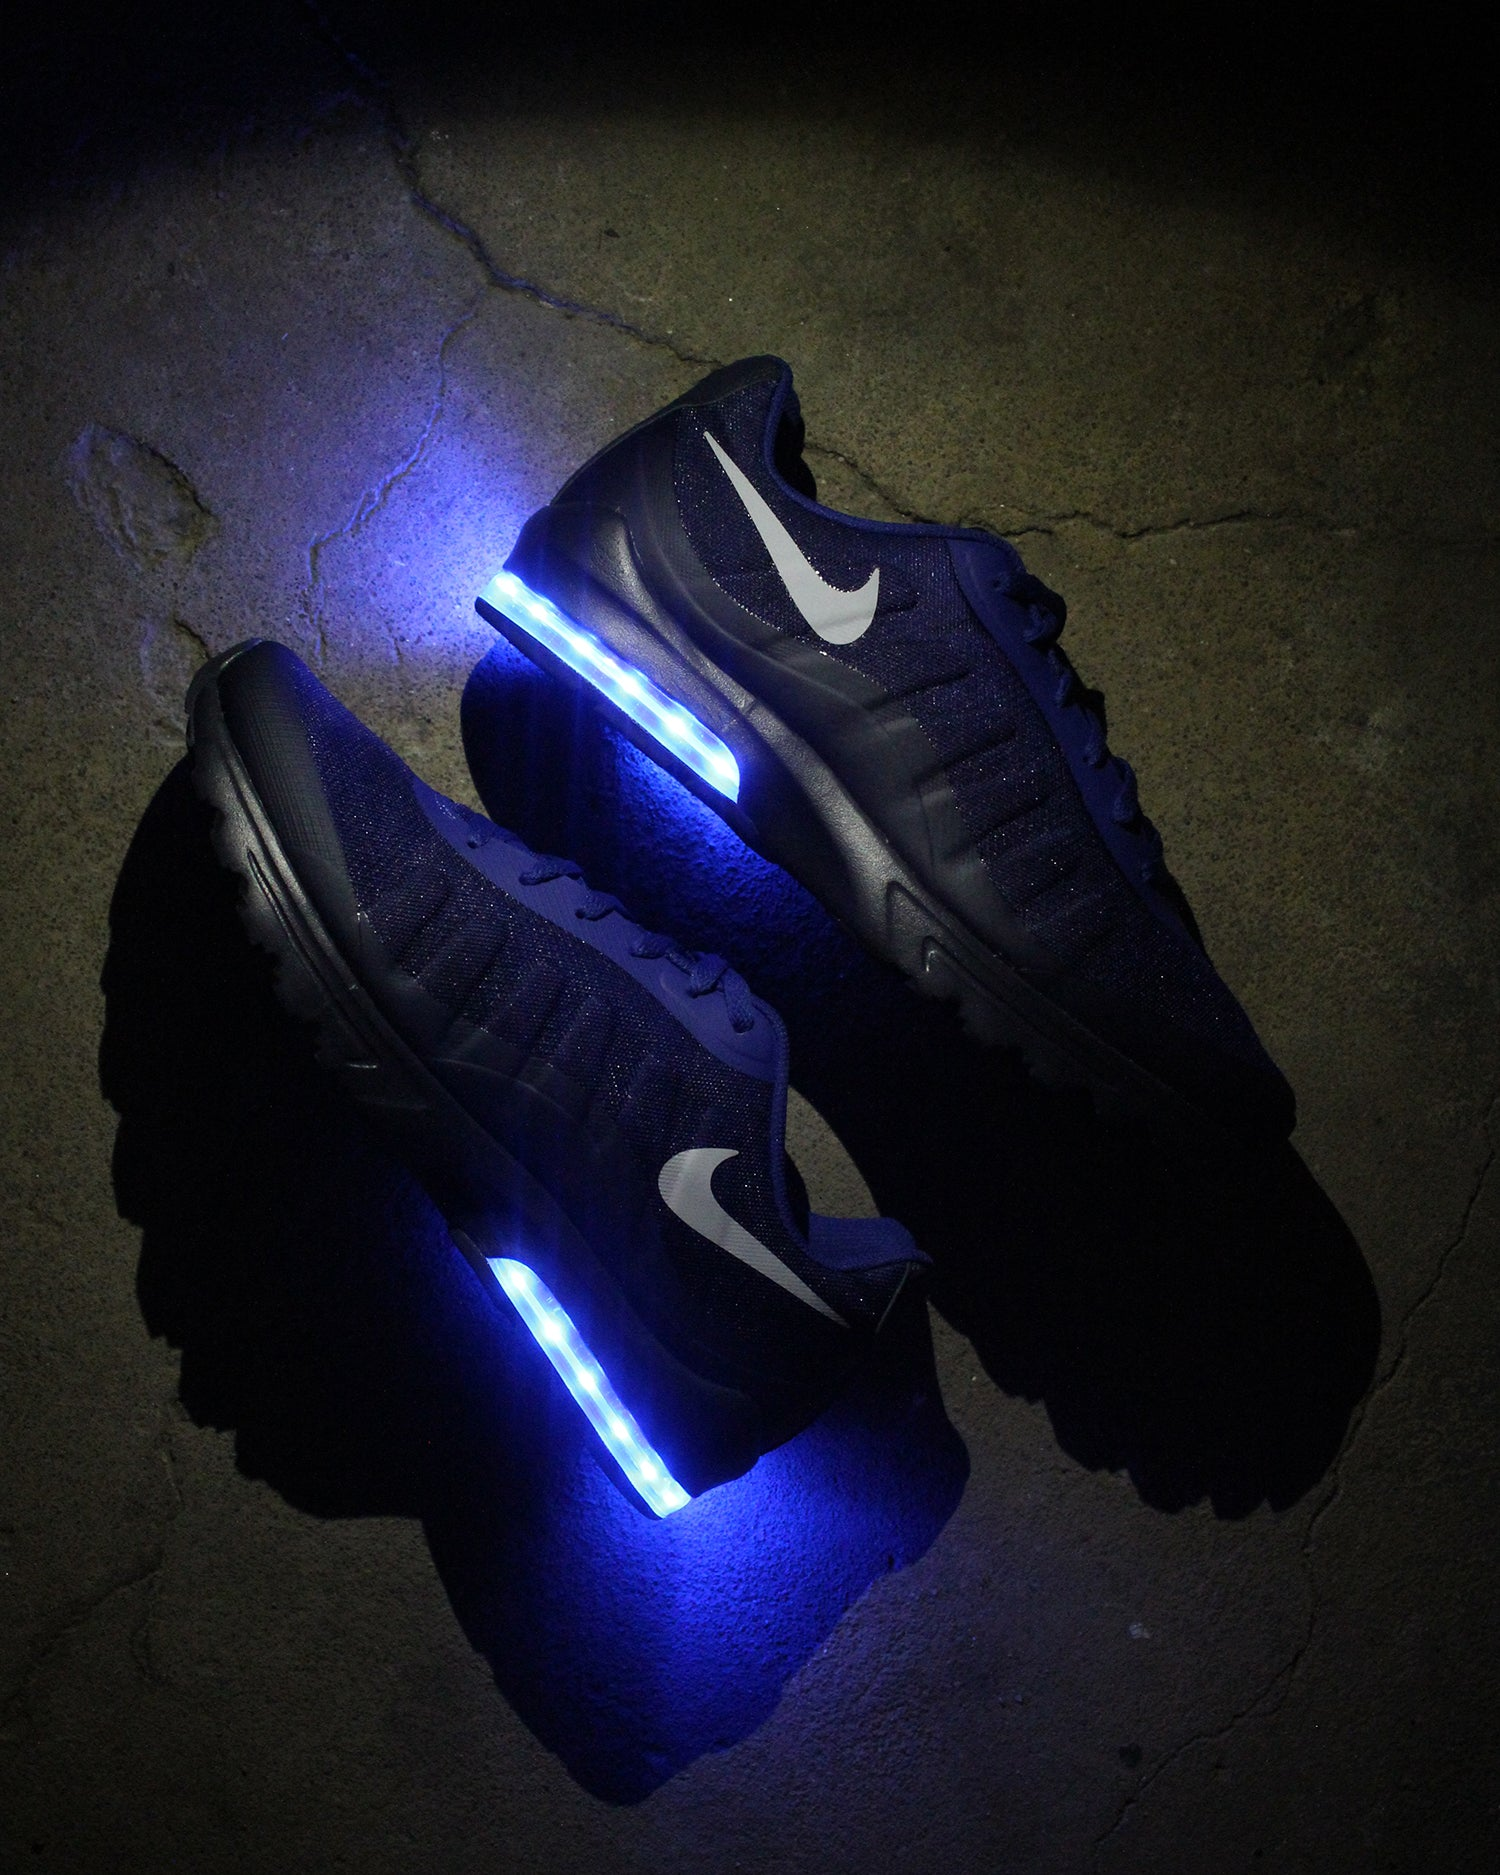 detailed look a61a6 4d8f9 NAVY BLUE NIKE AIR MAX INVIGOR WITH LIGHTS